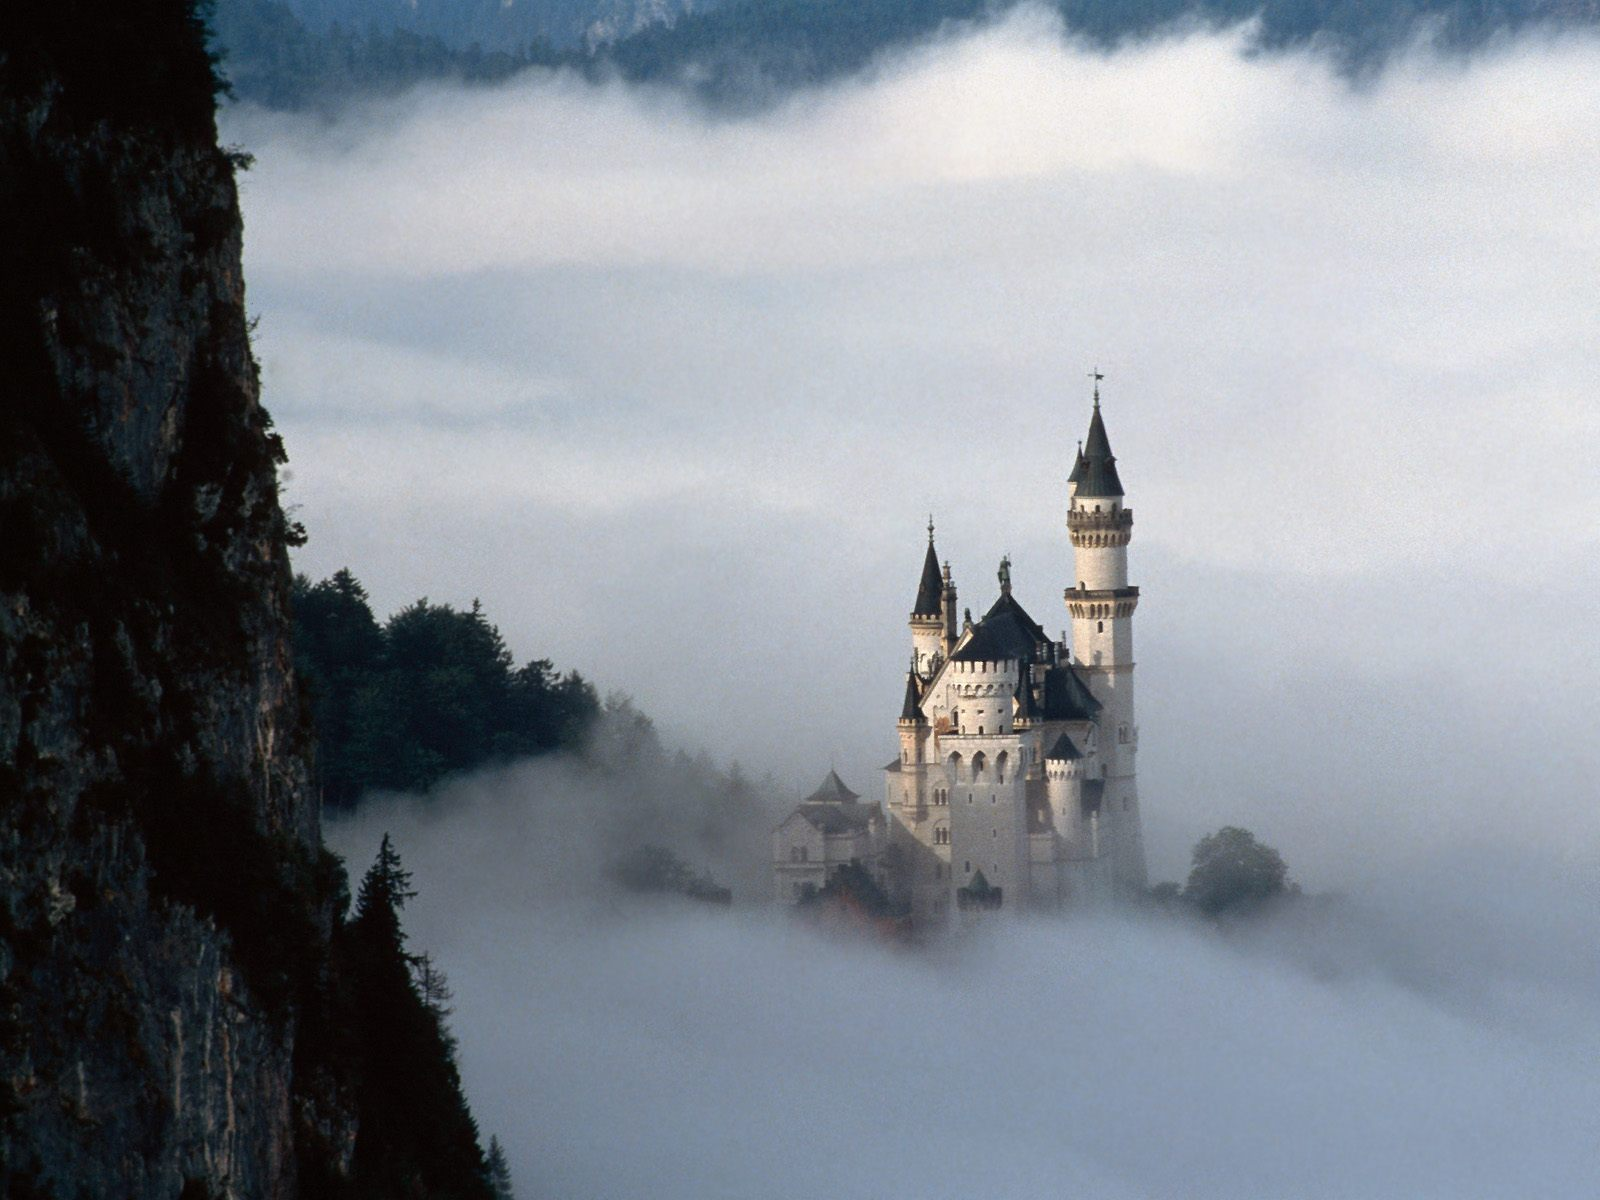 The Swan King's Castles Neuschwanstein– Germany (6)